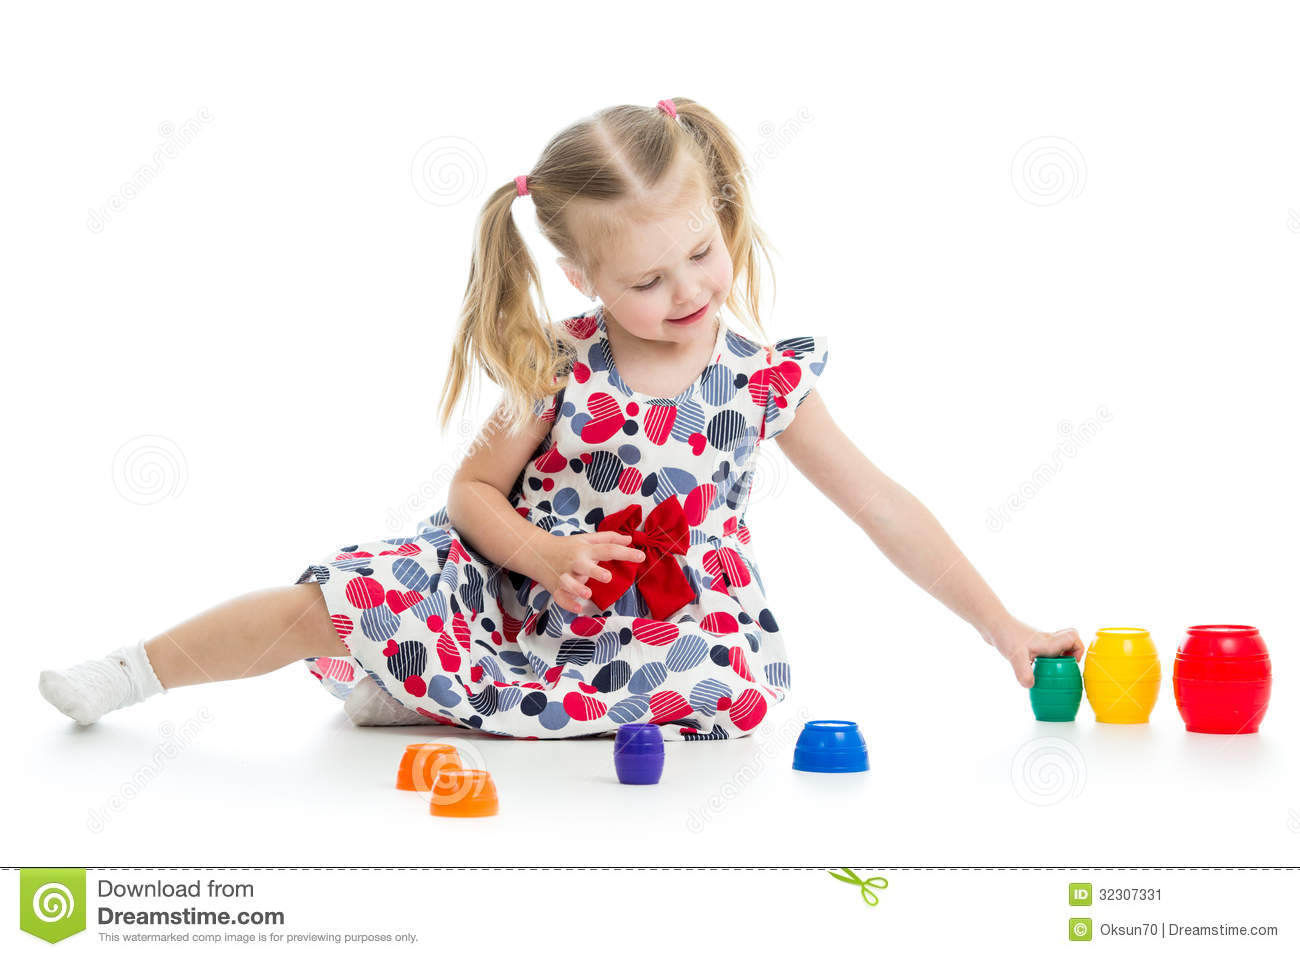 Girl Child Playing With Cup Toys Stock Image - Image: 32307331